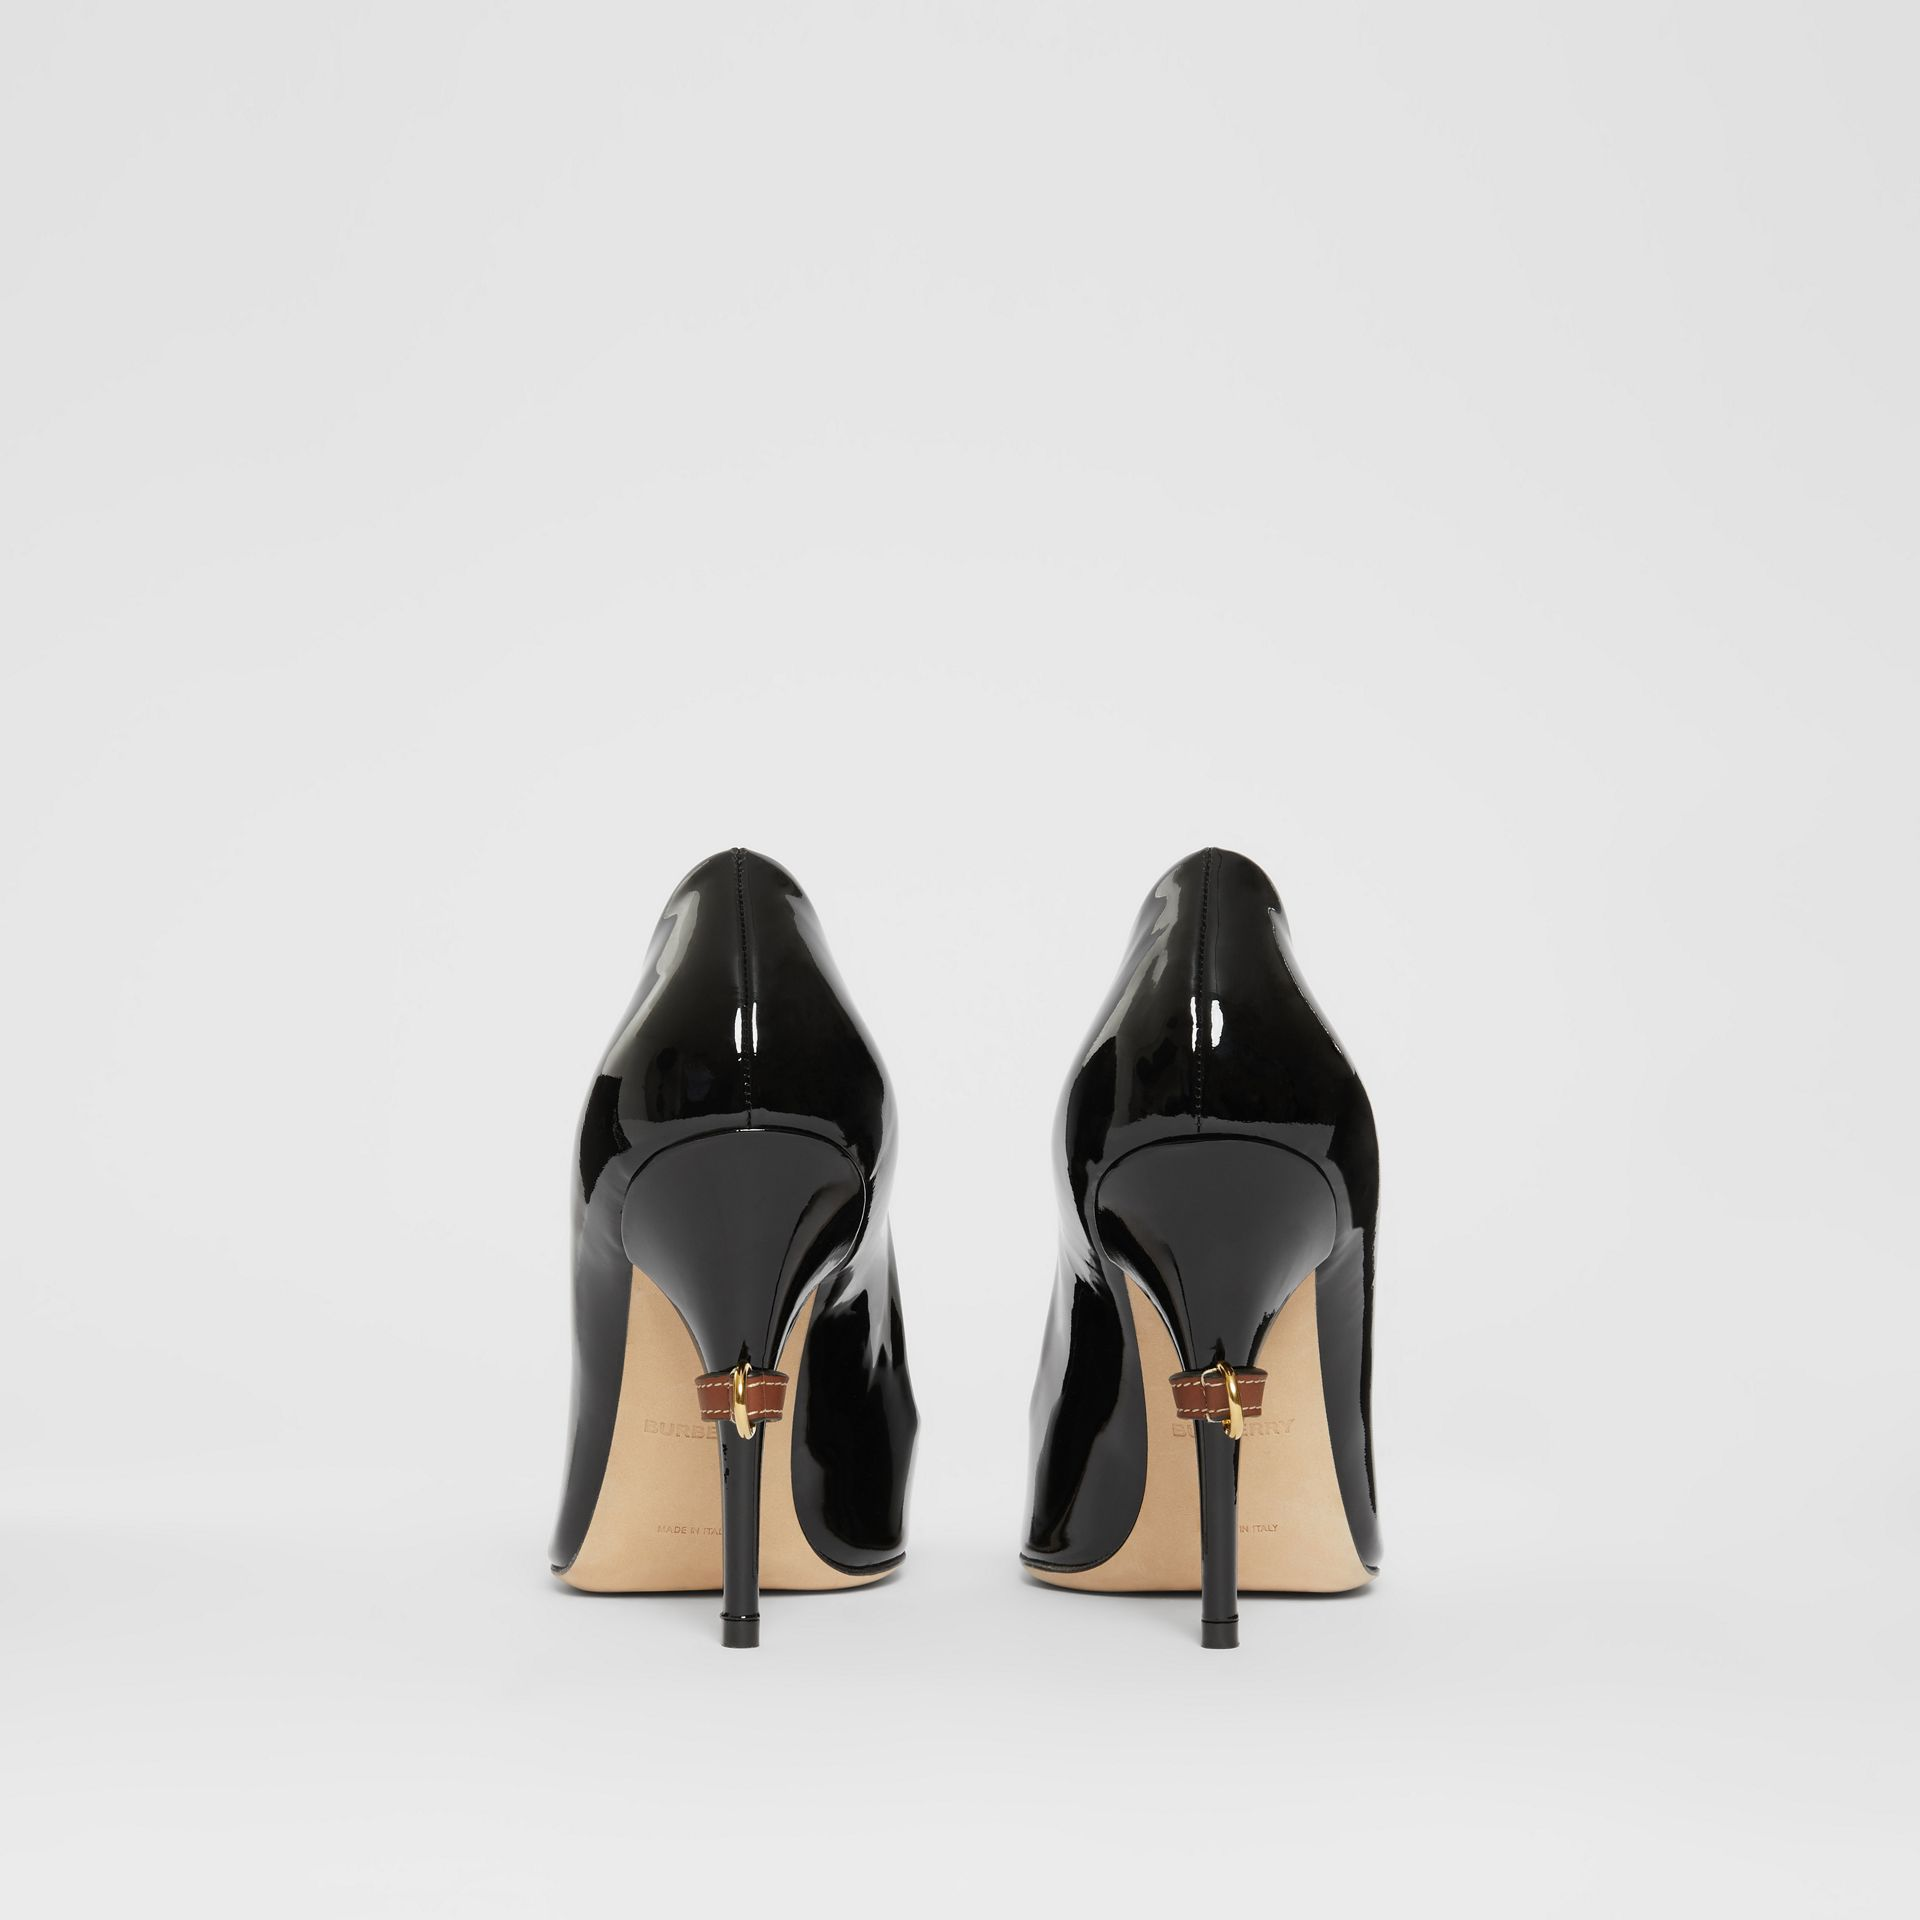 D-ring Detail Patent Leather Square-toe Pumps in Black - Women | Burberry United Kingdom - gallery image 4